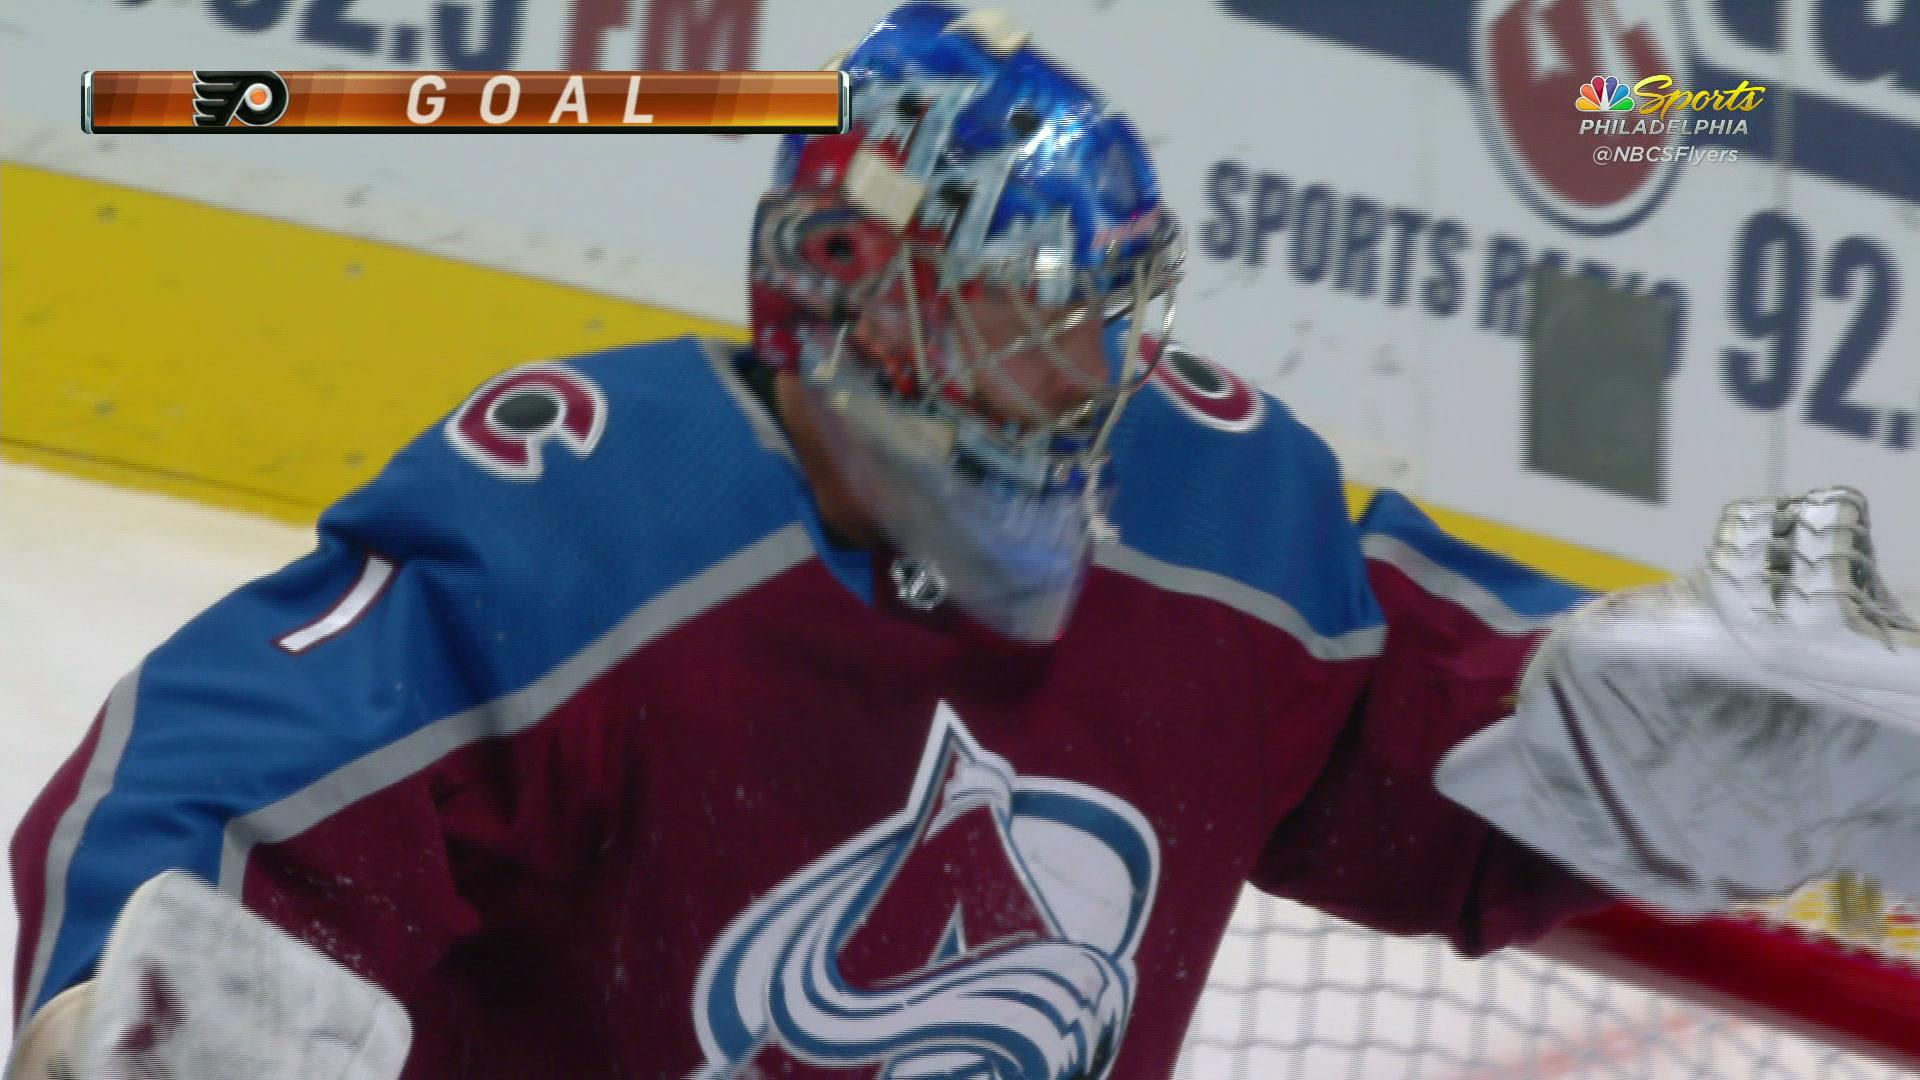 Sean Couturier scores his 1st goal of the season vs. Avalanche